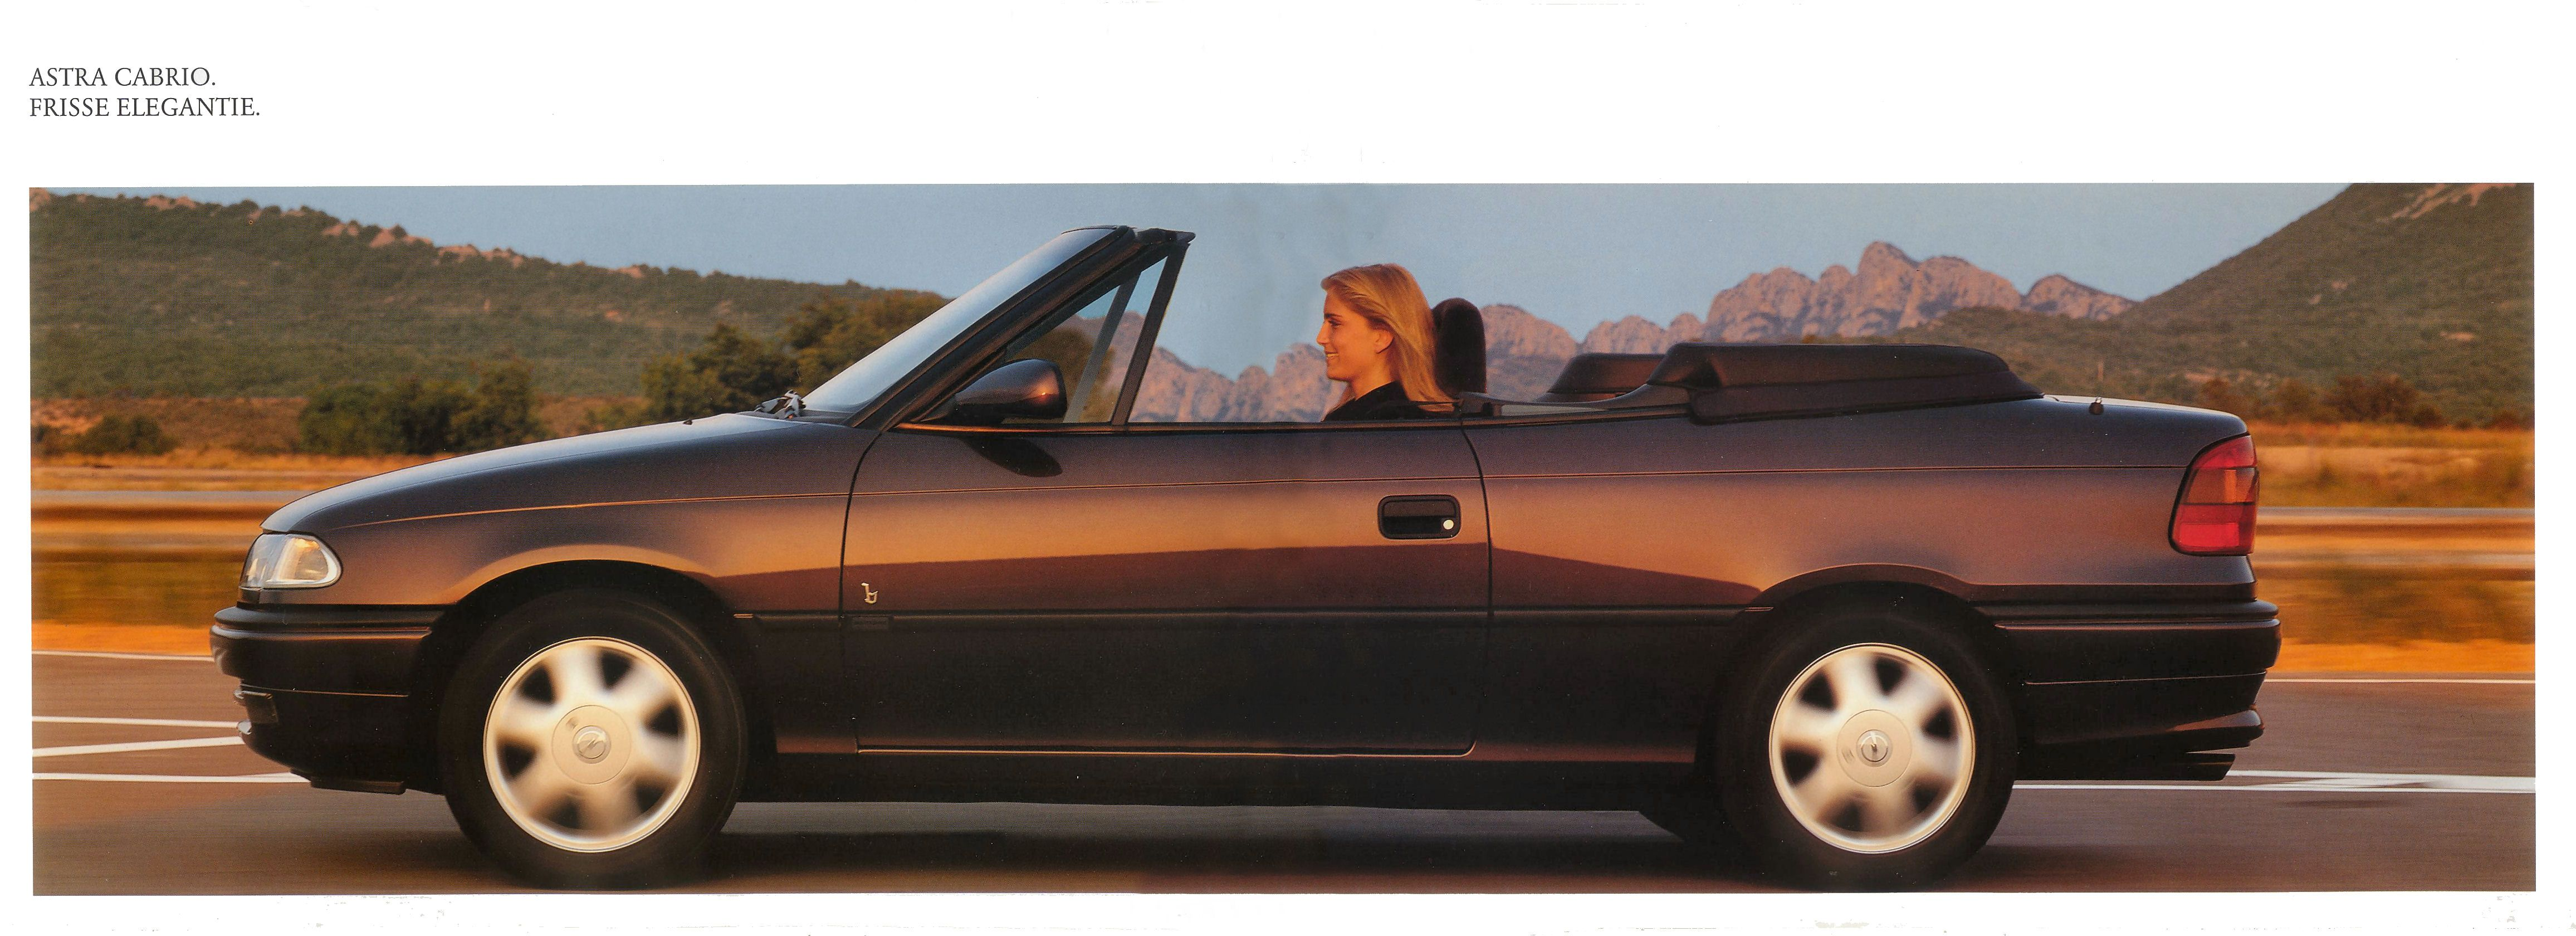 1995 opel astra cabrio brochure. Black Bedroom Furniture Sets. Home Design Ideas